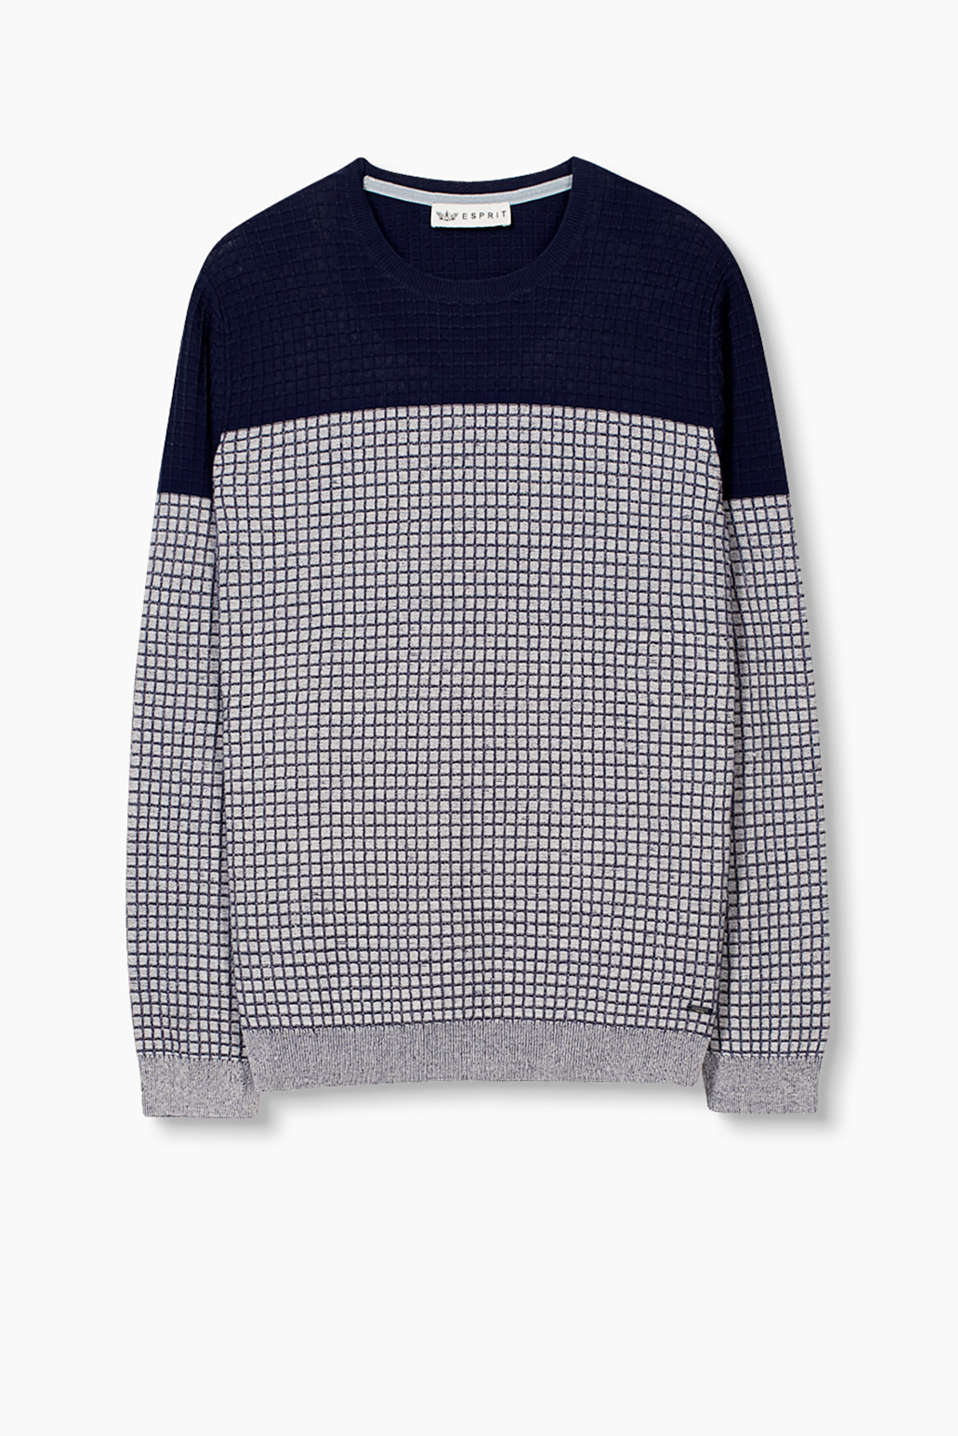 With a firm, glittery texture: 100% cotton jumper